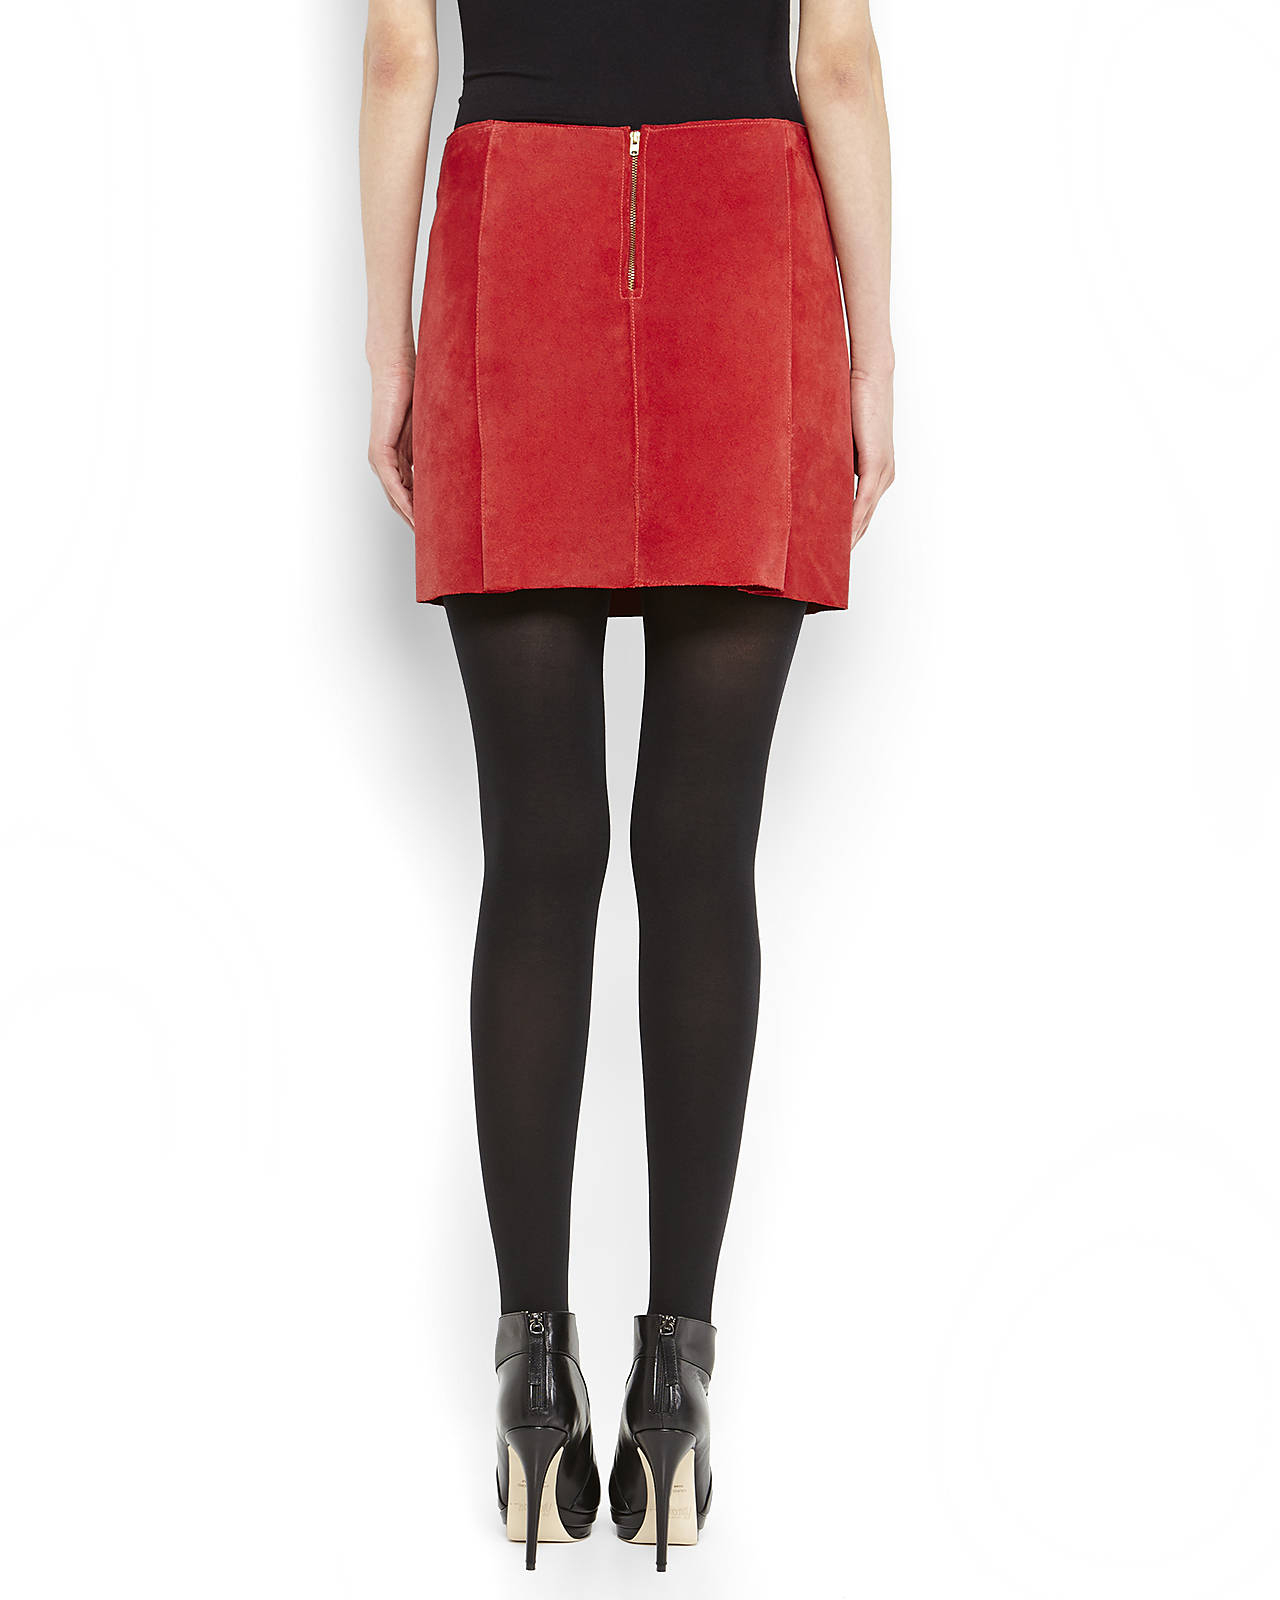 Maje Suede Mini Skirt in Red | Lyst